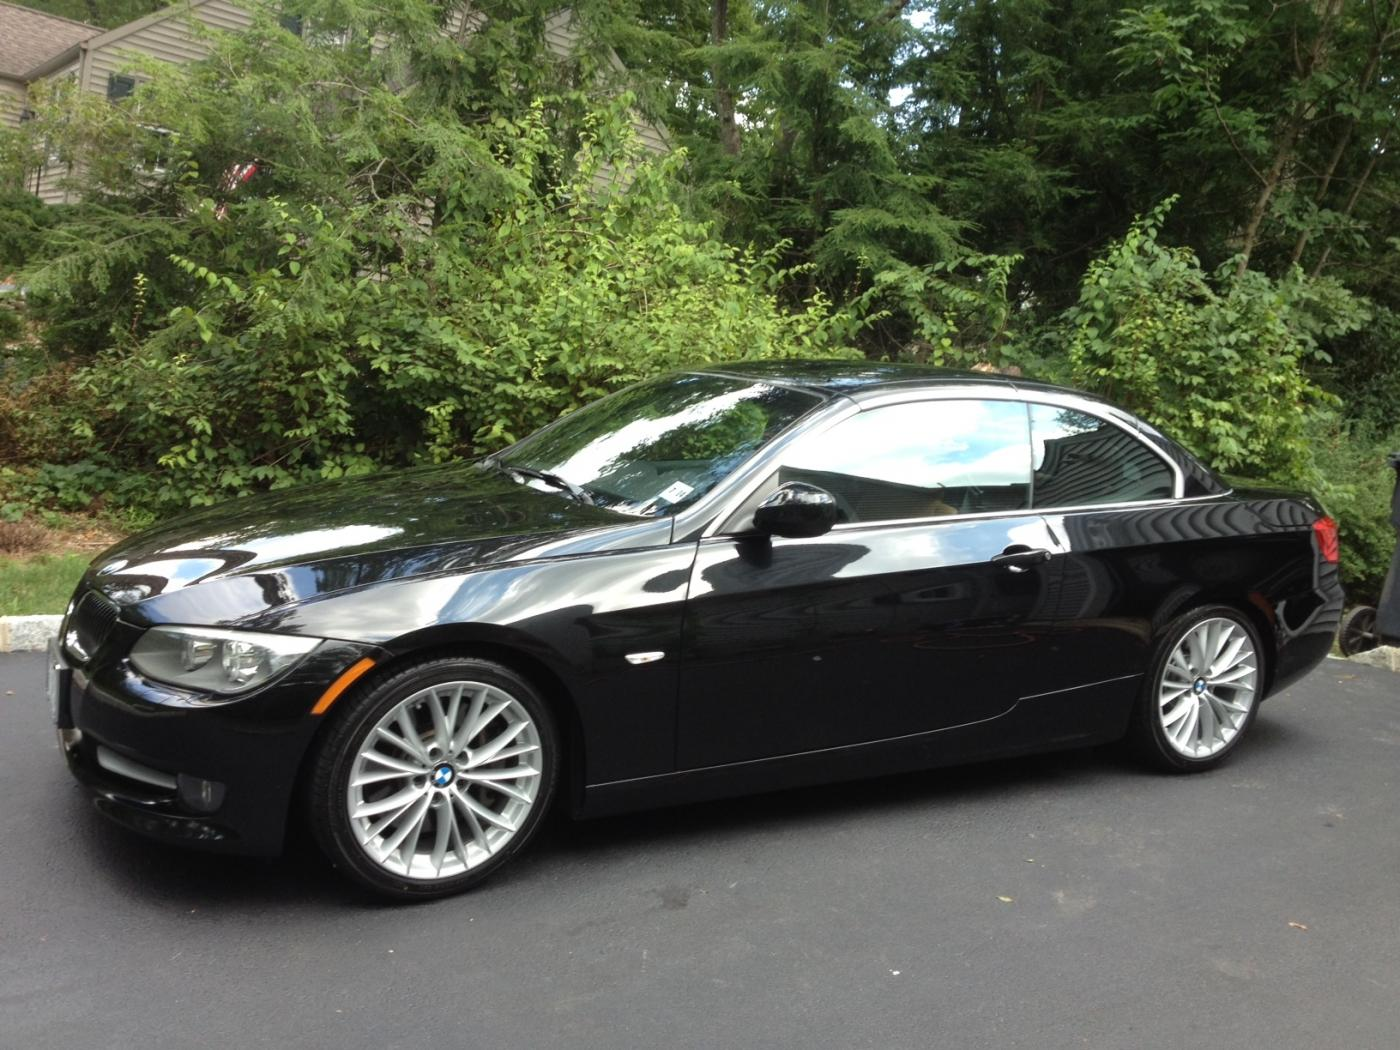 FS Certified BMW I ConvertibleMint Condition - 2013 bmw 335i convertible